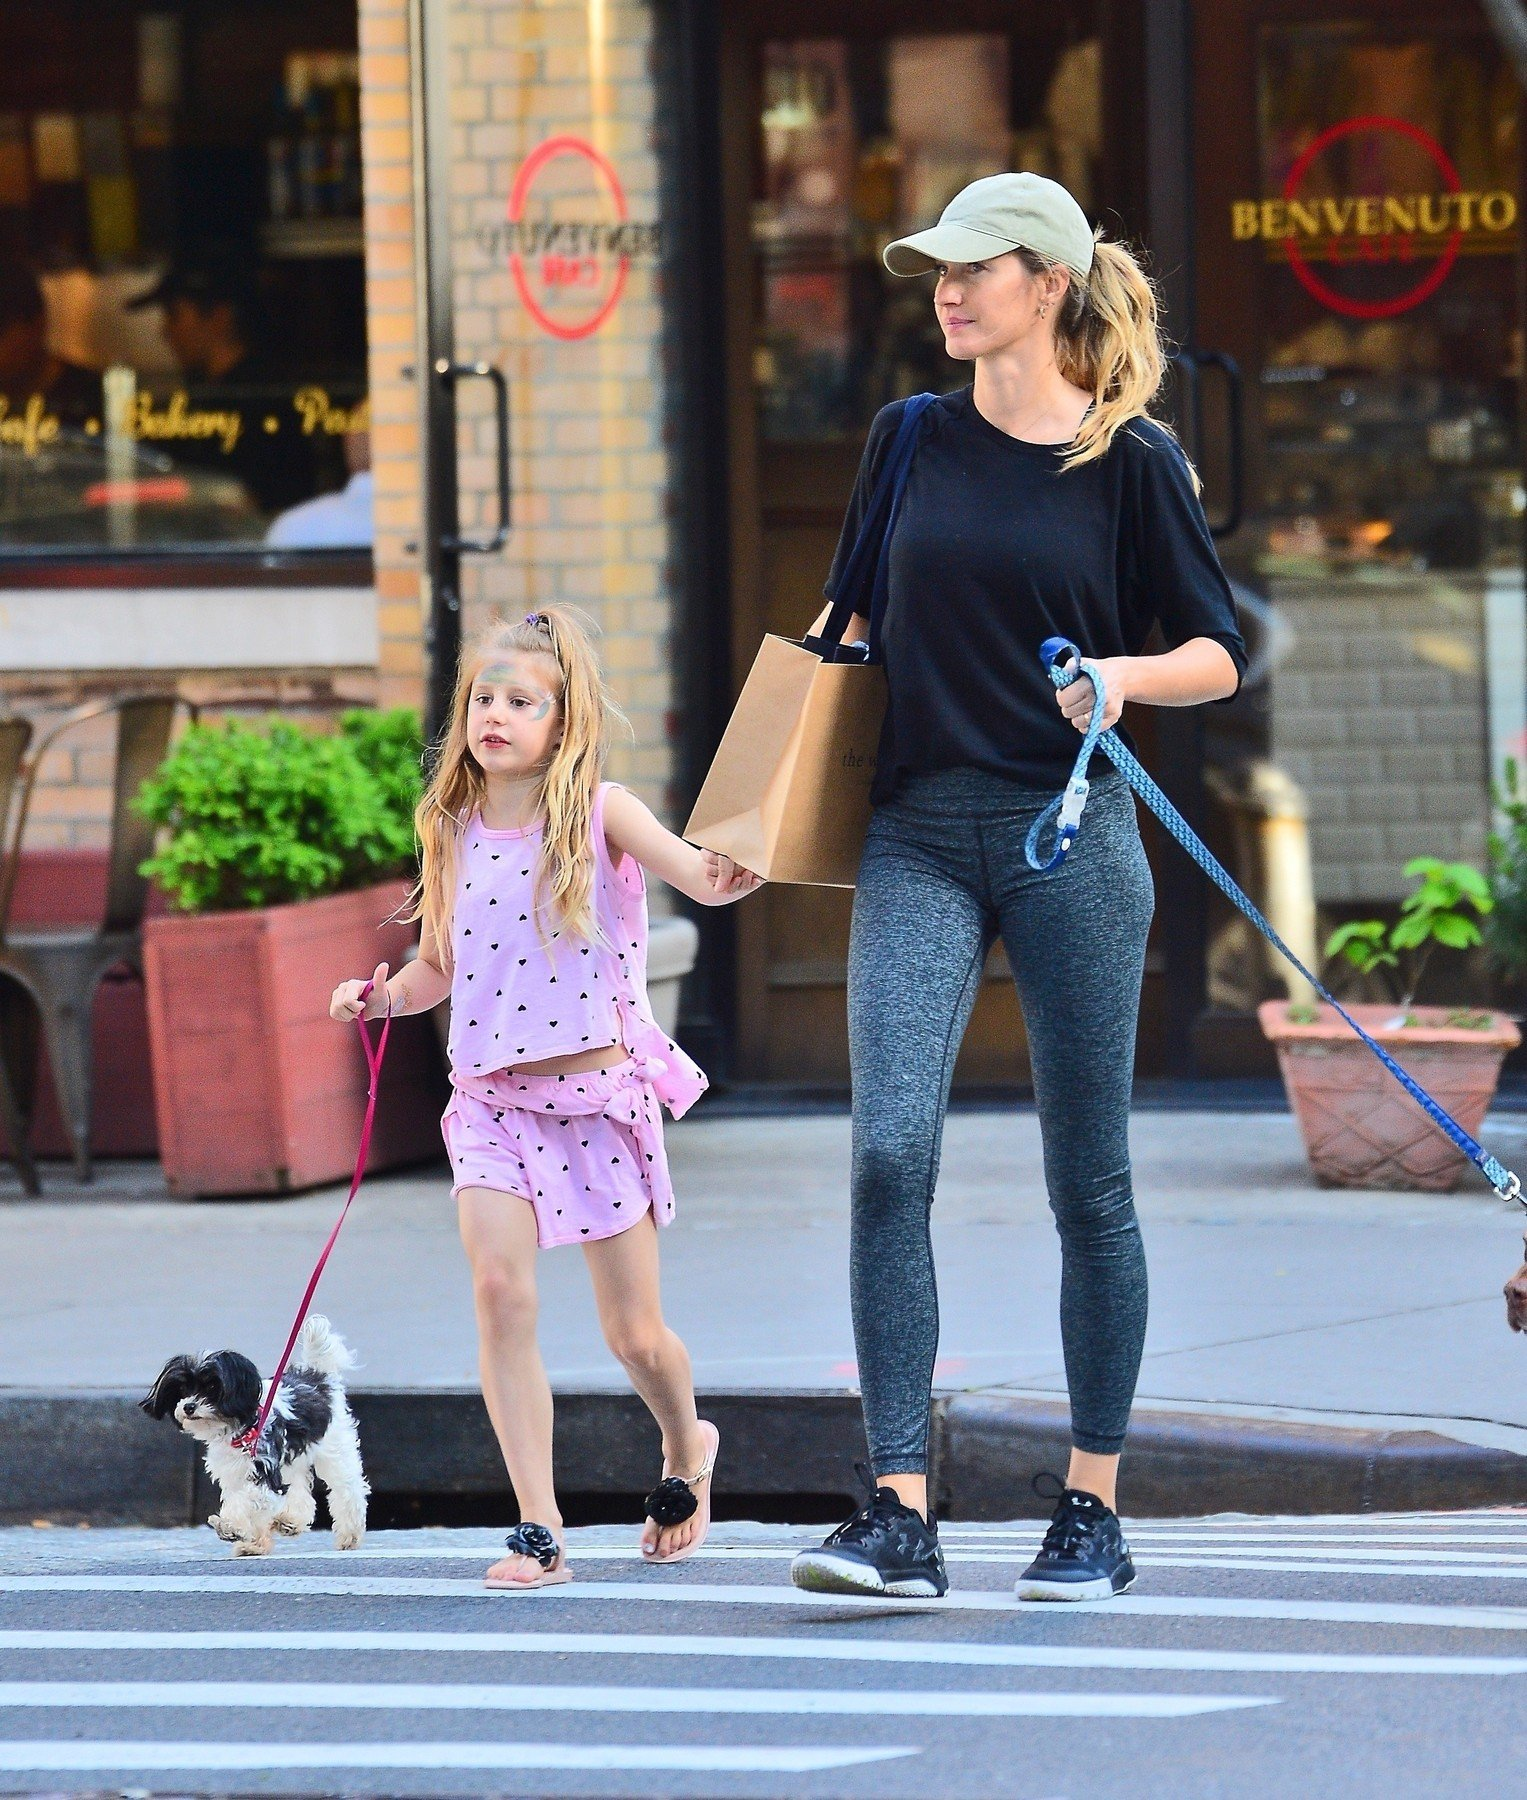 New York, NY  - *EXCLUSIVE* Gisele Bundchen takes her daughter Vivian Lake Brady for a walk with her dogs on the pier in NYC.  Pictured: Gisele Bundchen  BACKGRID USA 18 MAY 2019, Image: 434563478, License: Rights-managed, Restrictions: , Model Release: no, Credit line: Profimedia, Backgrid USA